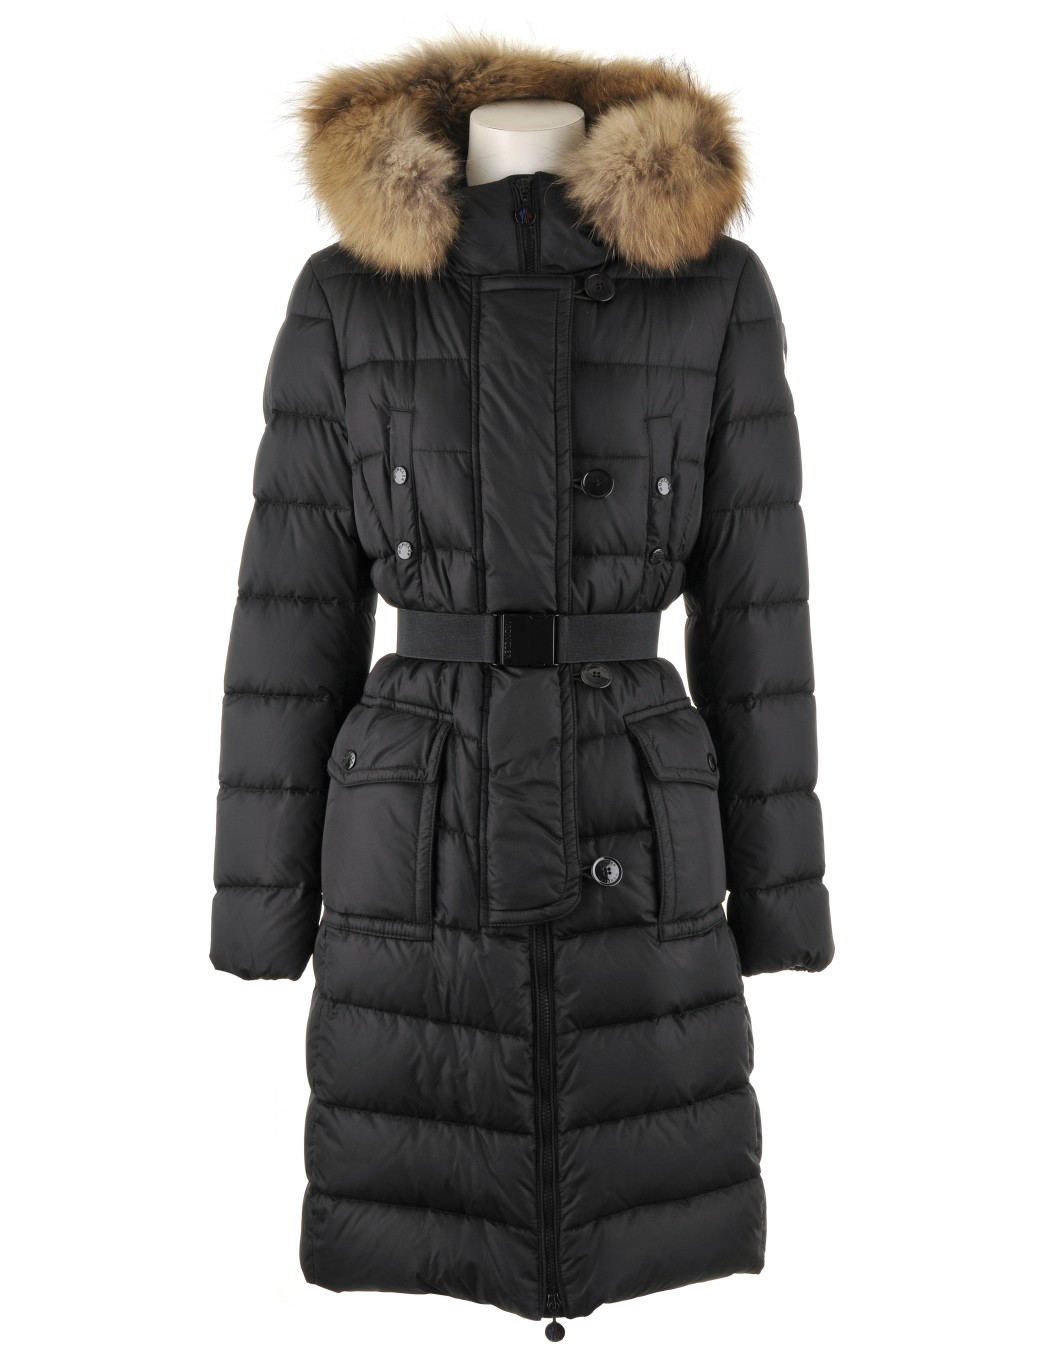 Moncler Coats Moncler women's fur hat black